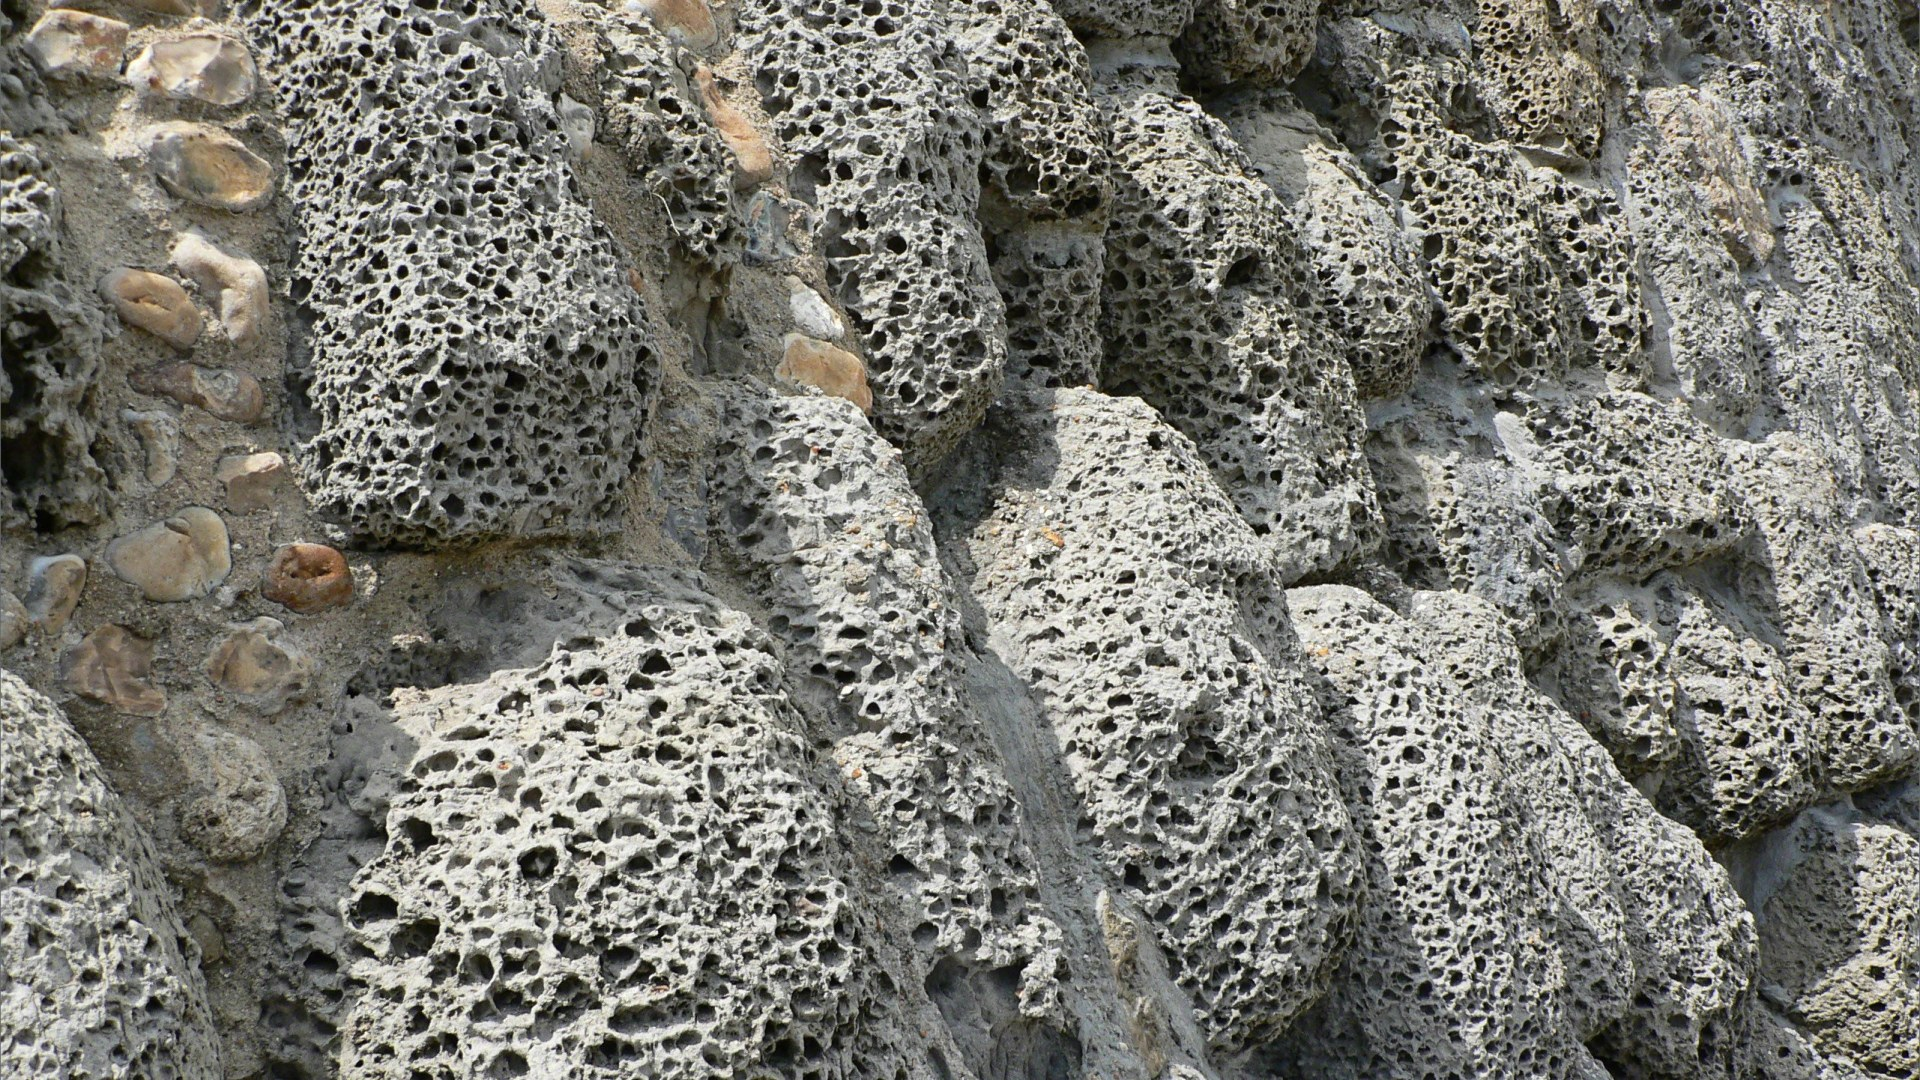 Rocks with holes caused by natural erosion in a sea wall